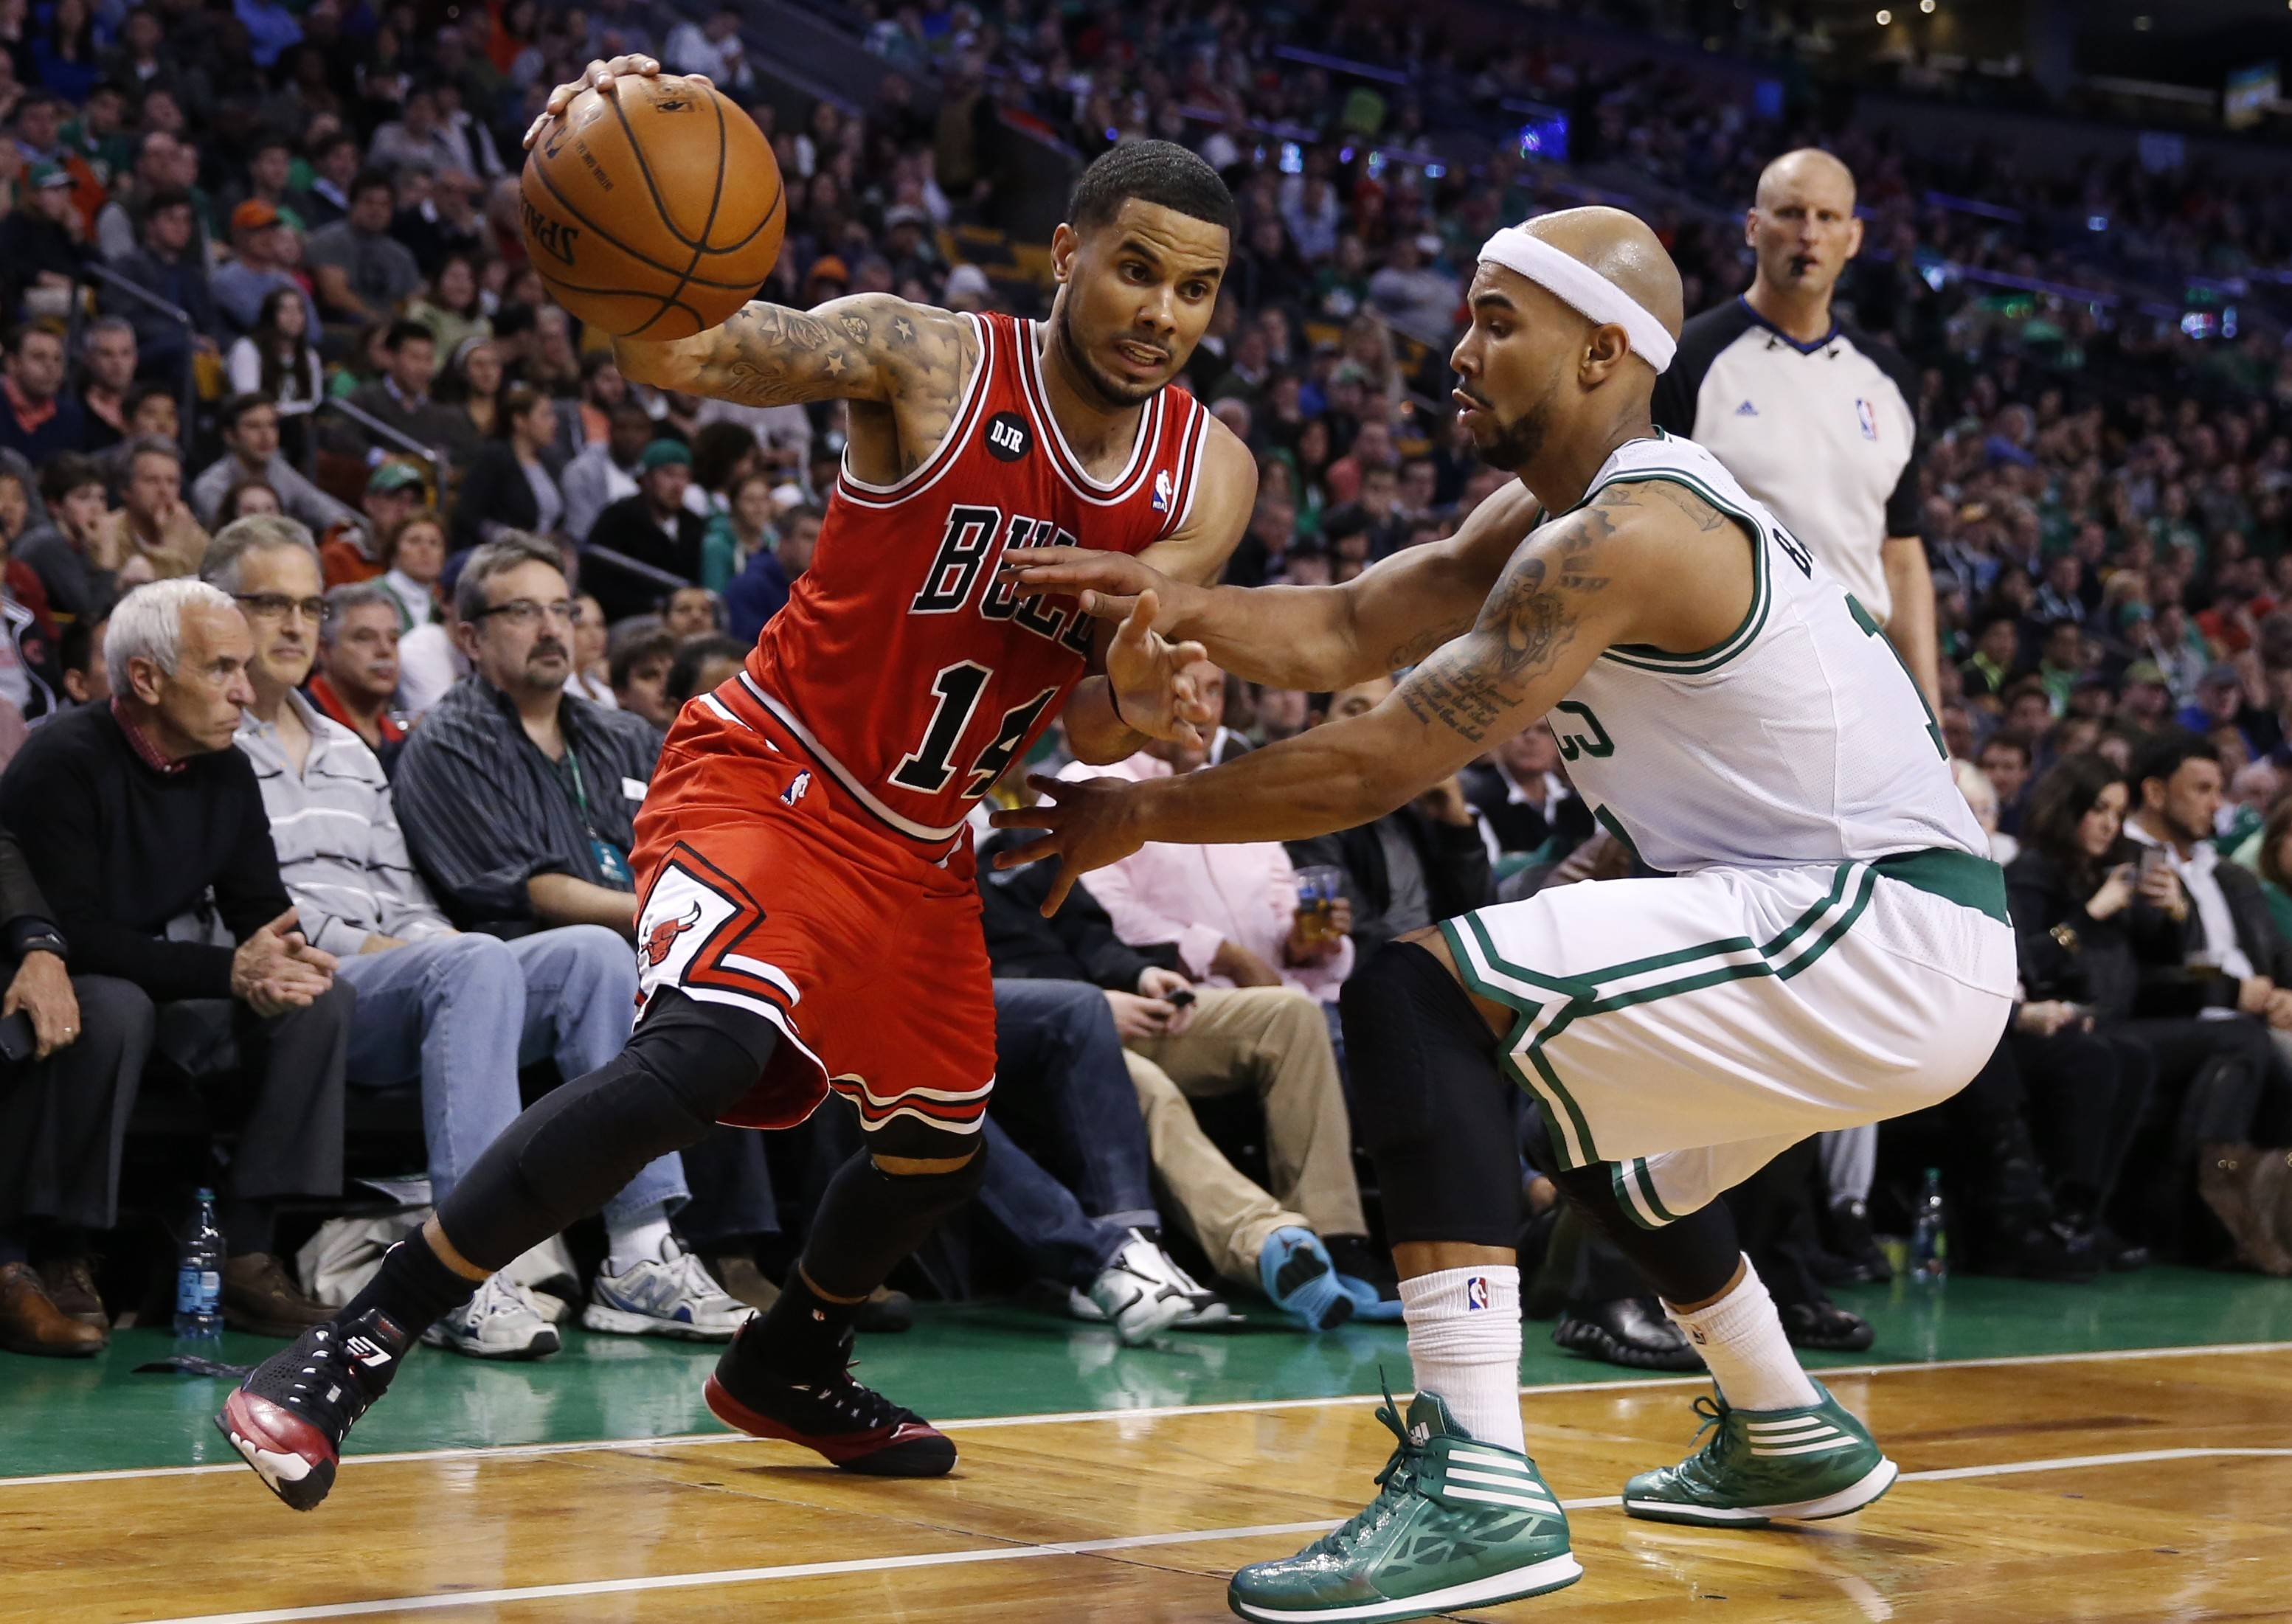 Bulls guard D.J. Augustin drives past the Celtics' Jerryd Bayless in the second quarter Sunday night on his way to a career-high 33 points.